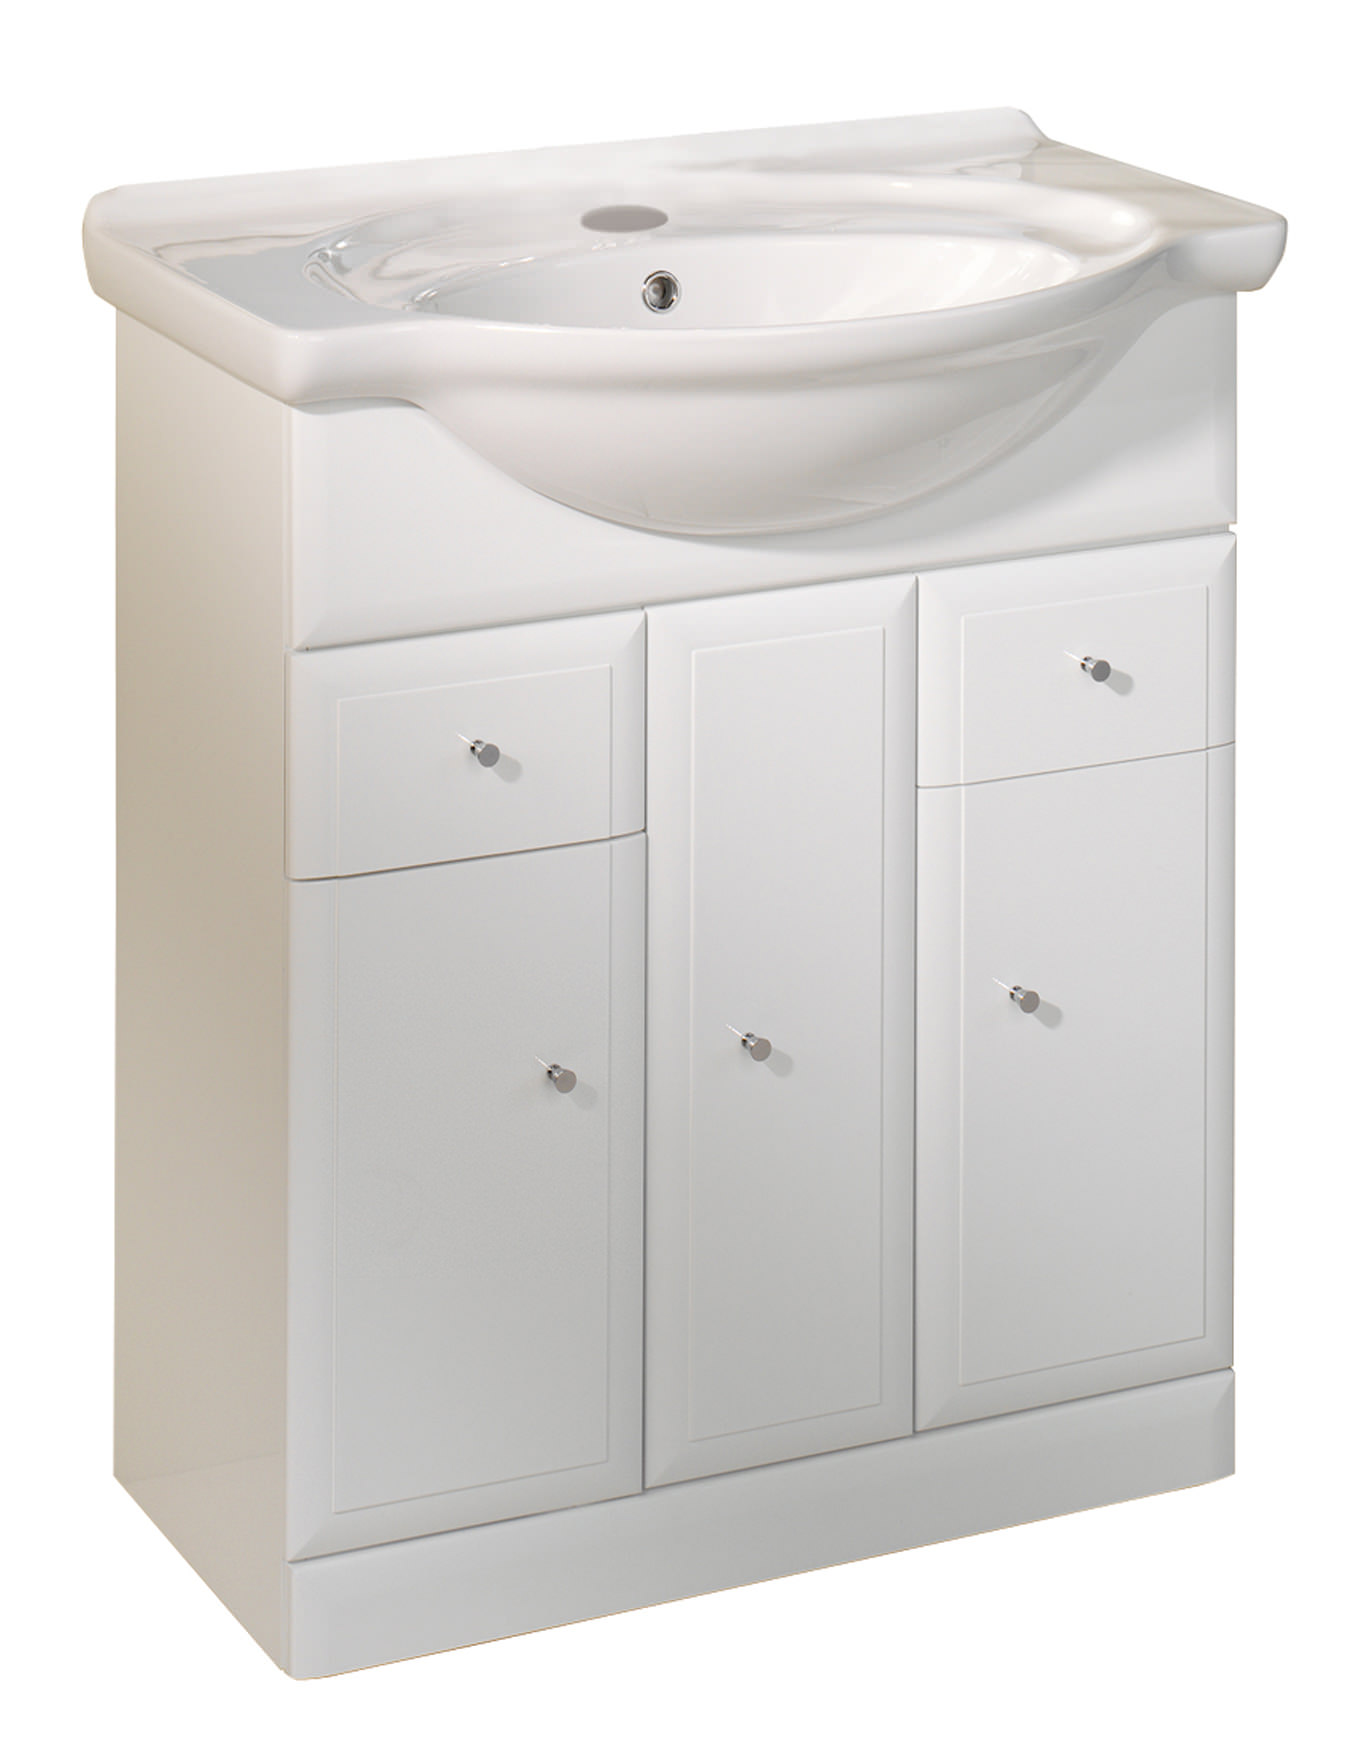 Roper rhodes valencia 700mm freestanding basin unit for Bathroom cabinets 700mm